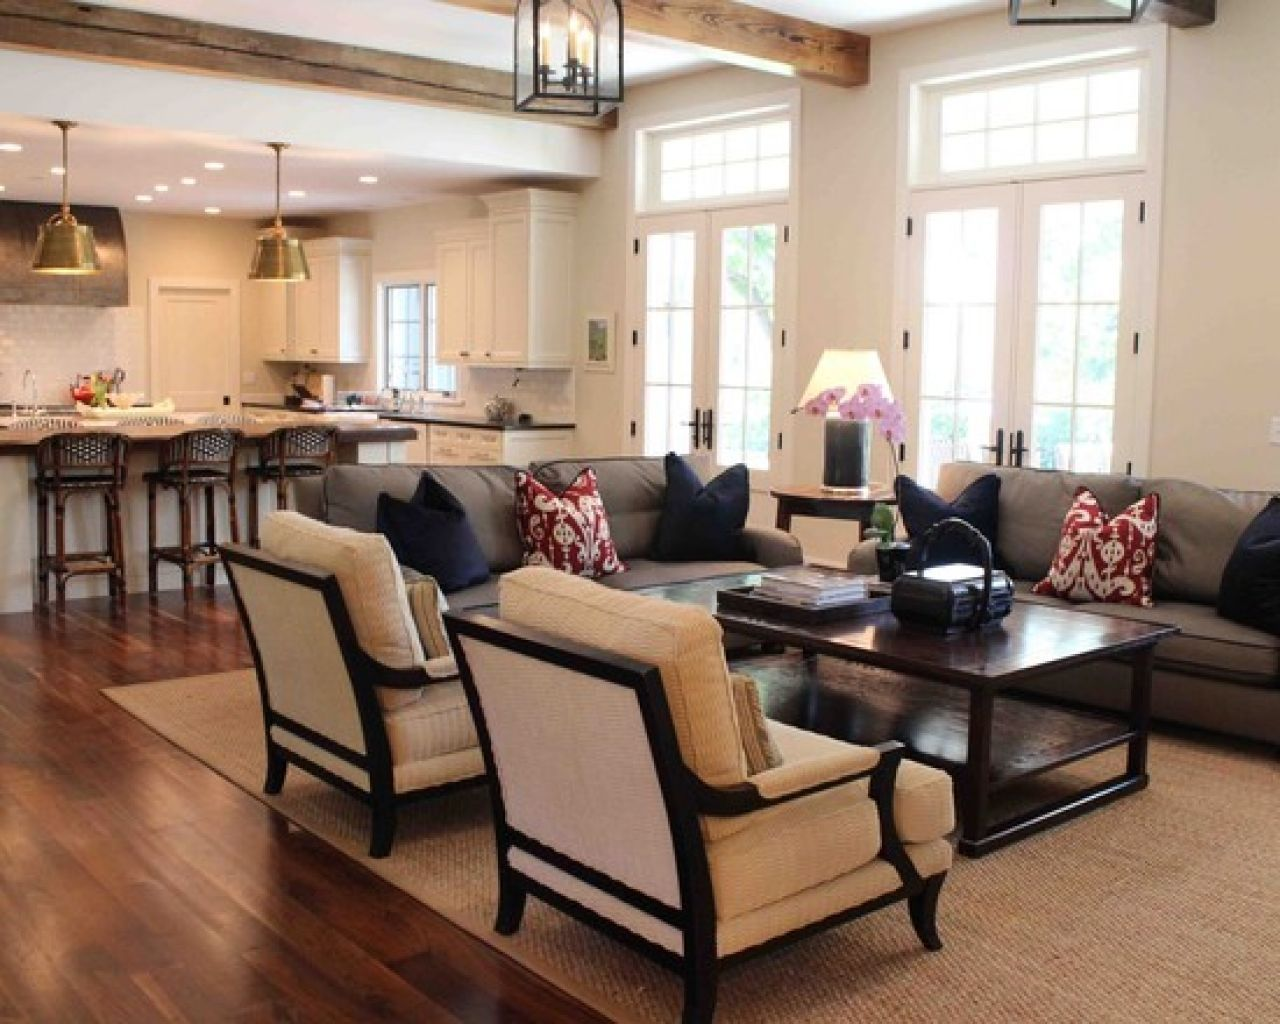 Traditional Living Room Decorating Ideas Traditional Living Room Des Rectangular Living Rooms Living Room Decor Traditional Living Room Furniture Arrangement Small traditional living rooms